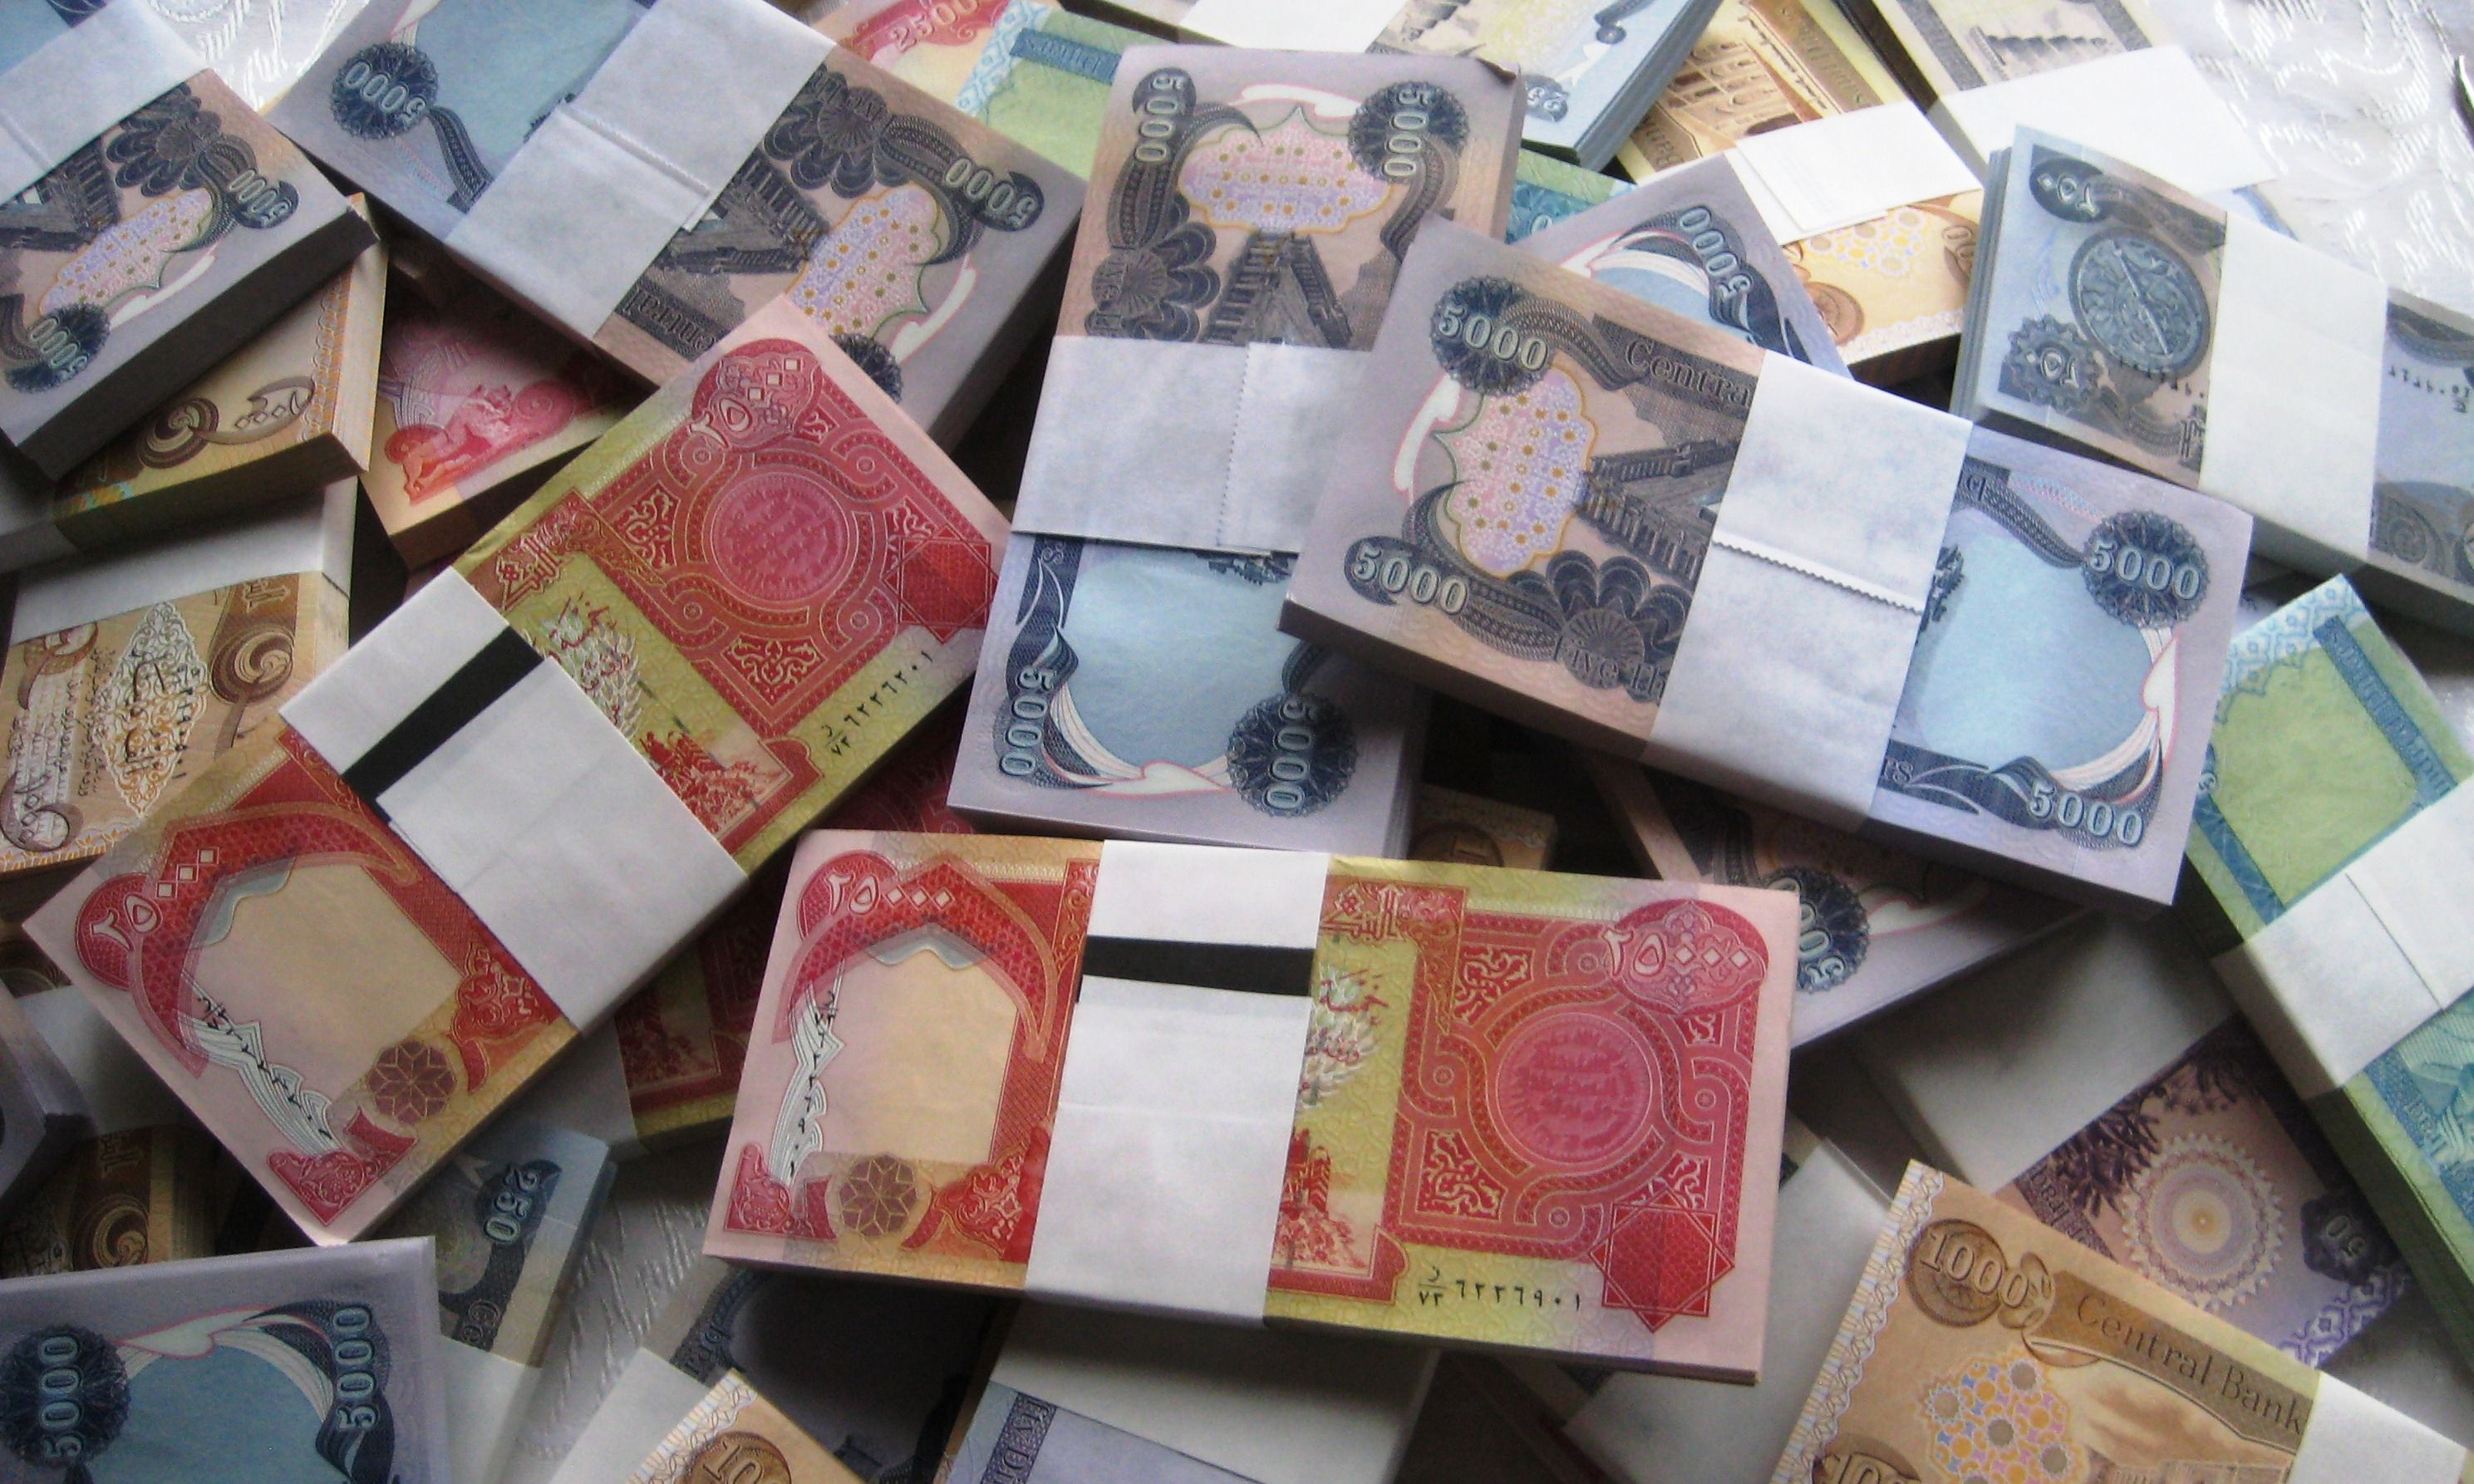 Iraqi Dinar Bricks Bundles Stacks Buyiraqidinarhere Com